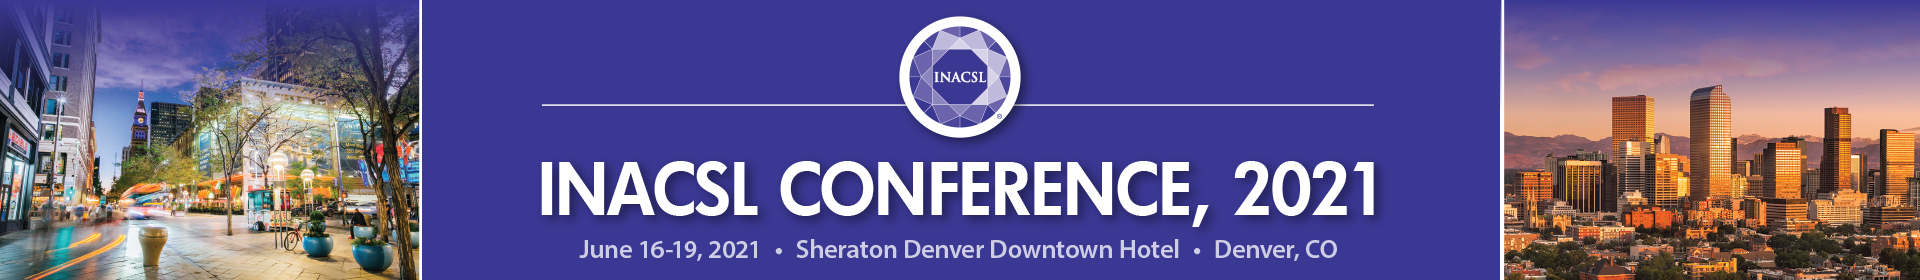 INACSL Conference, 2021 Event Banner